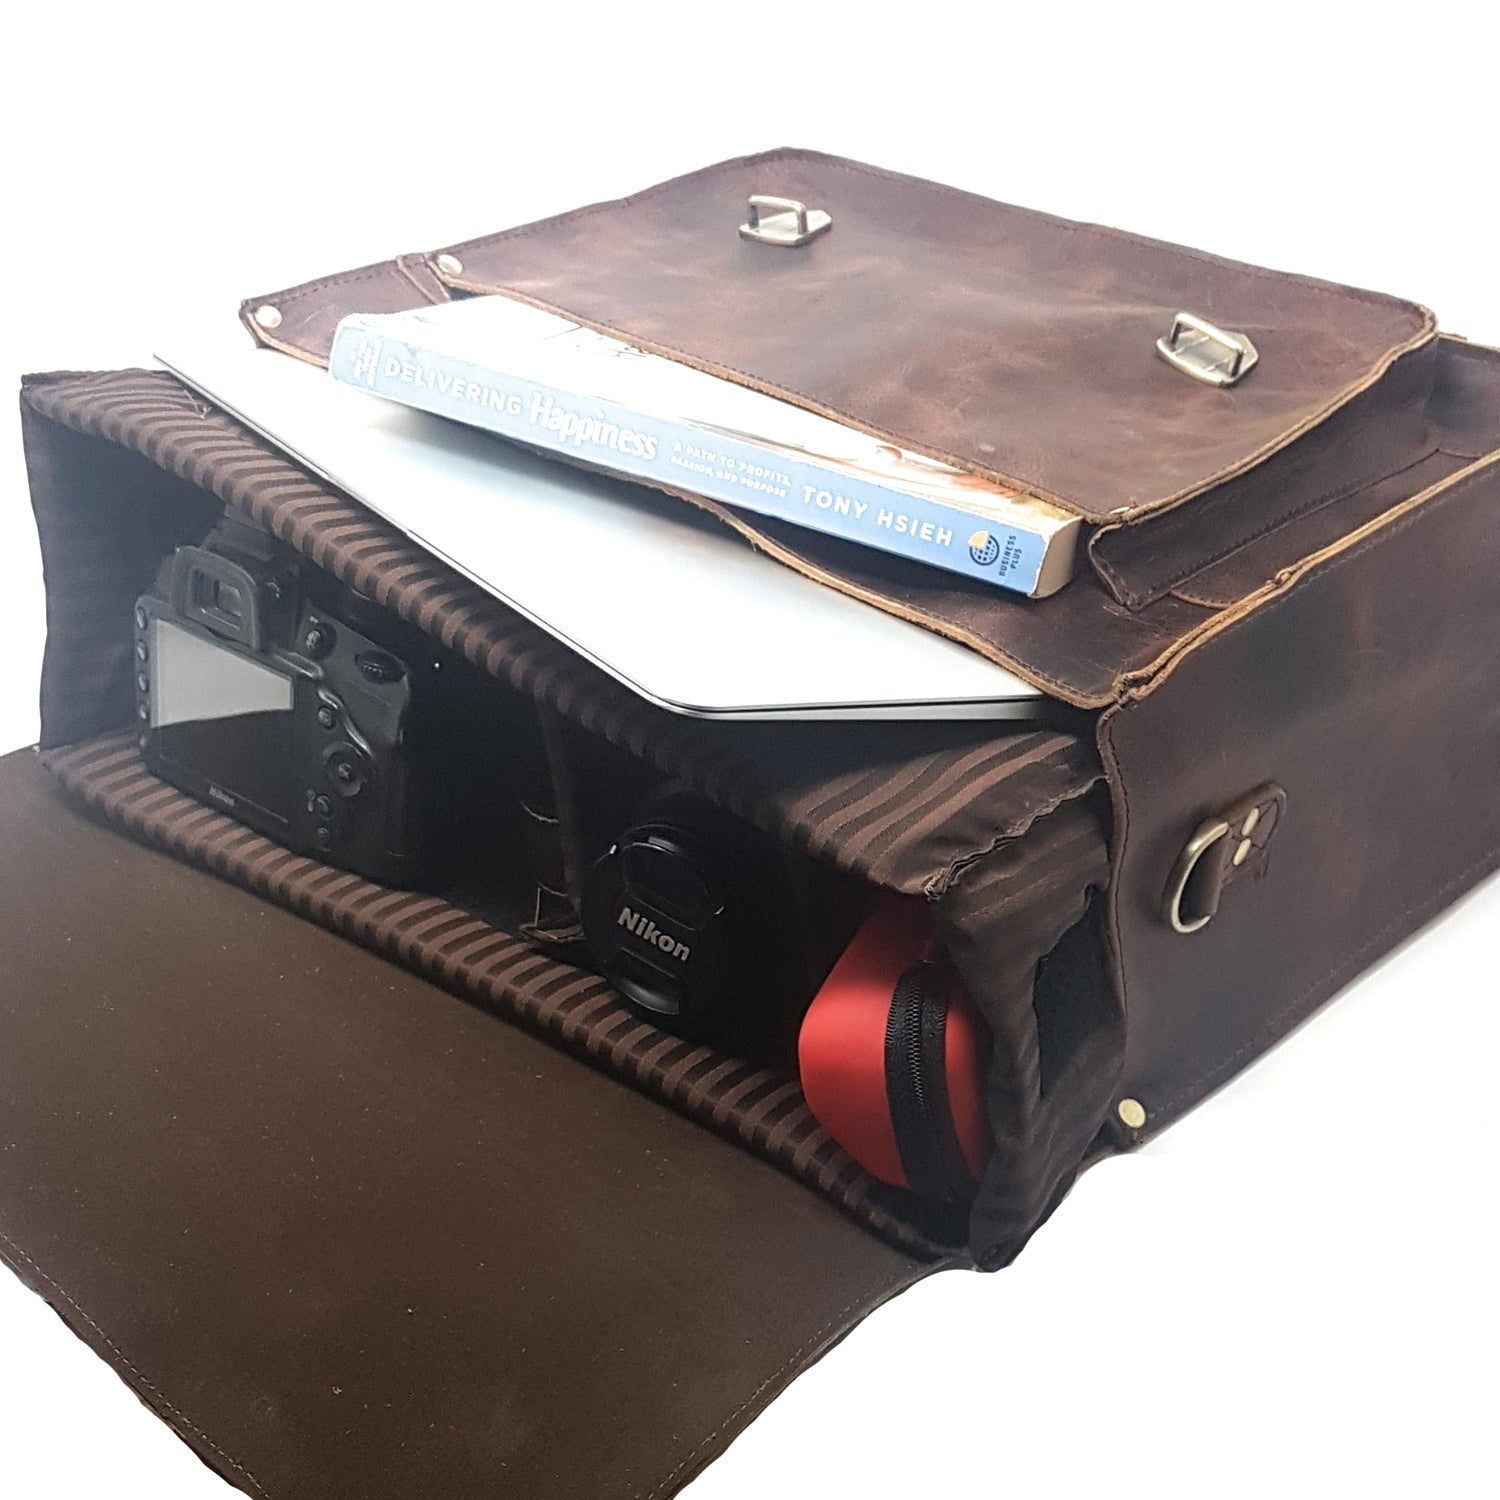 brown leather camera bag interior with DSLR body, lens, MacBook laptop, book, sunglasses, padded case